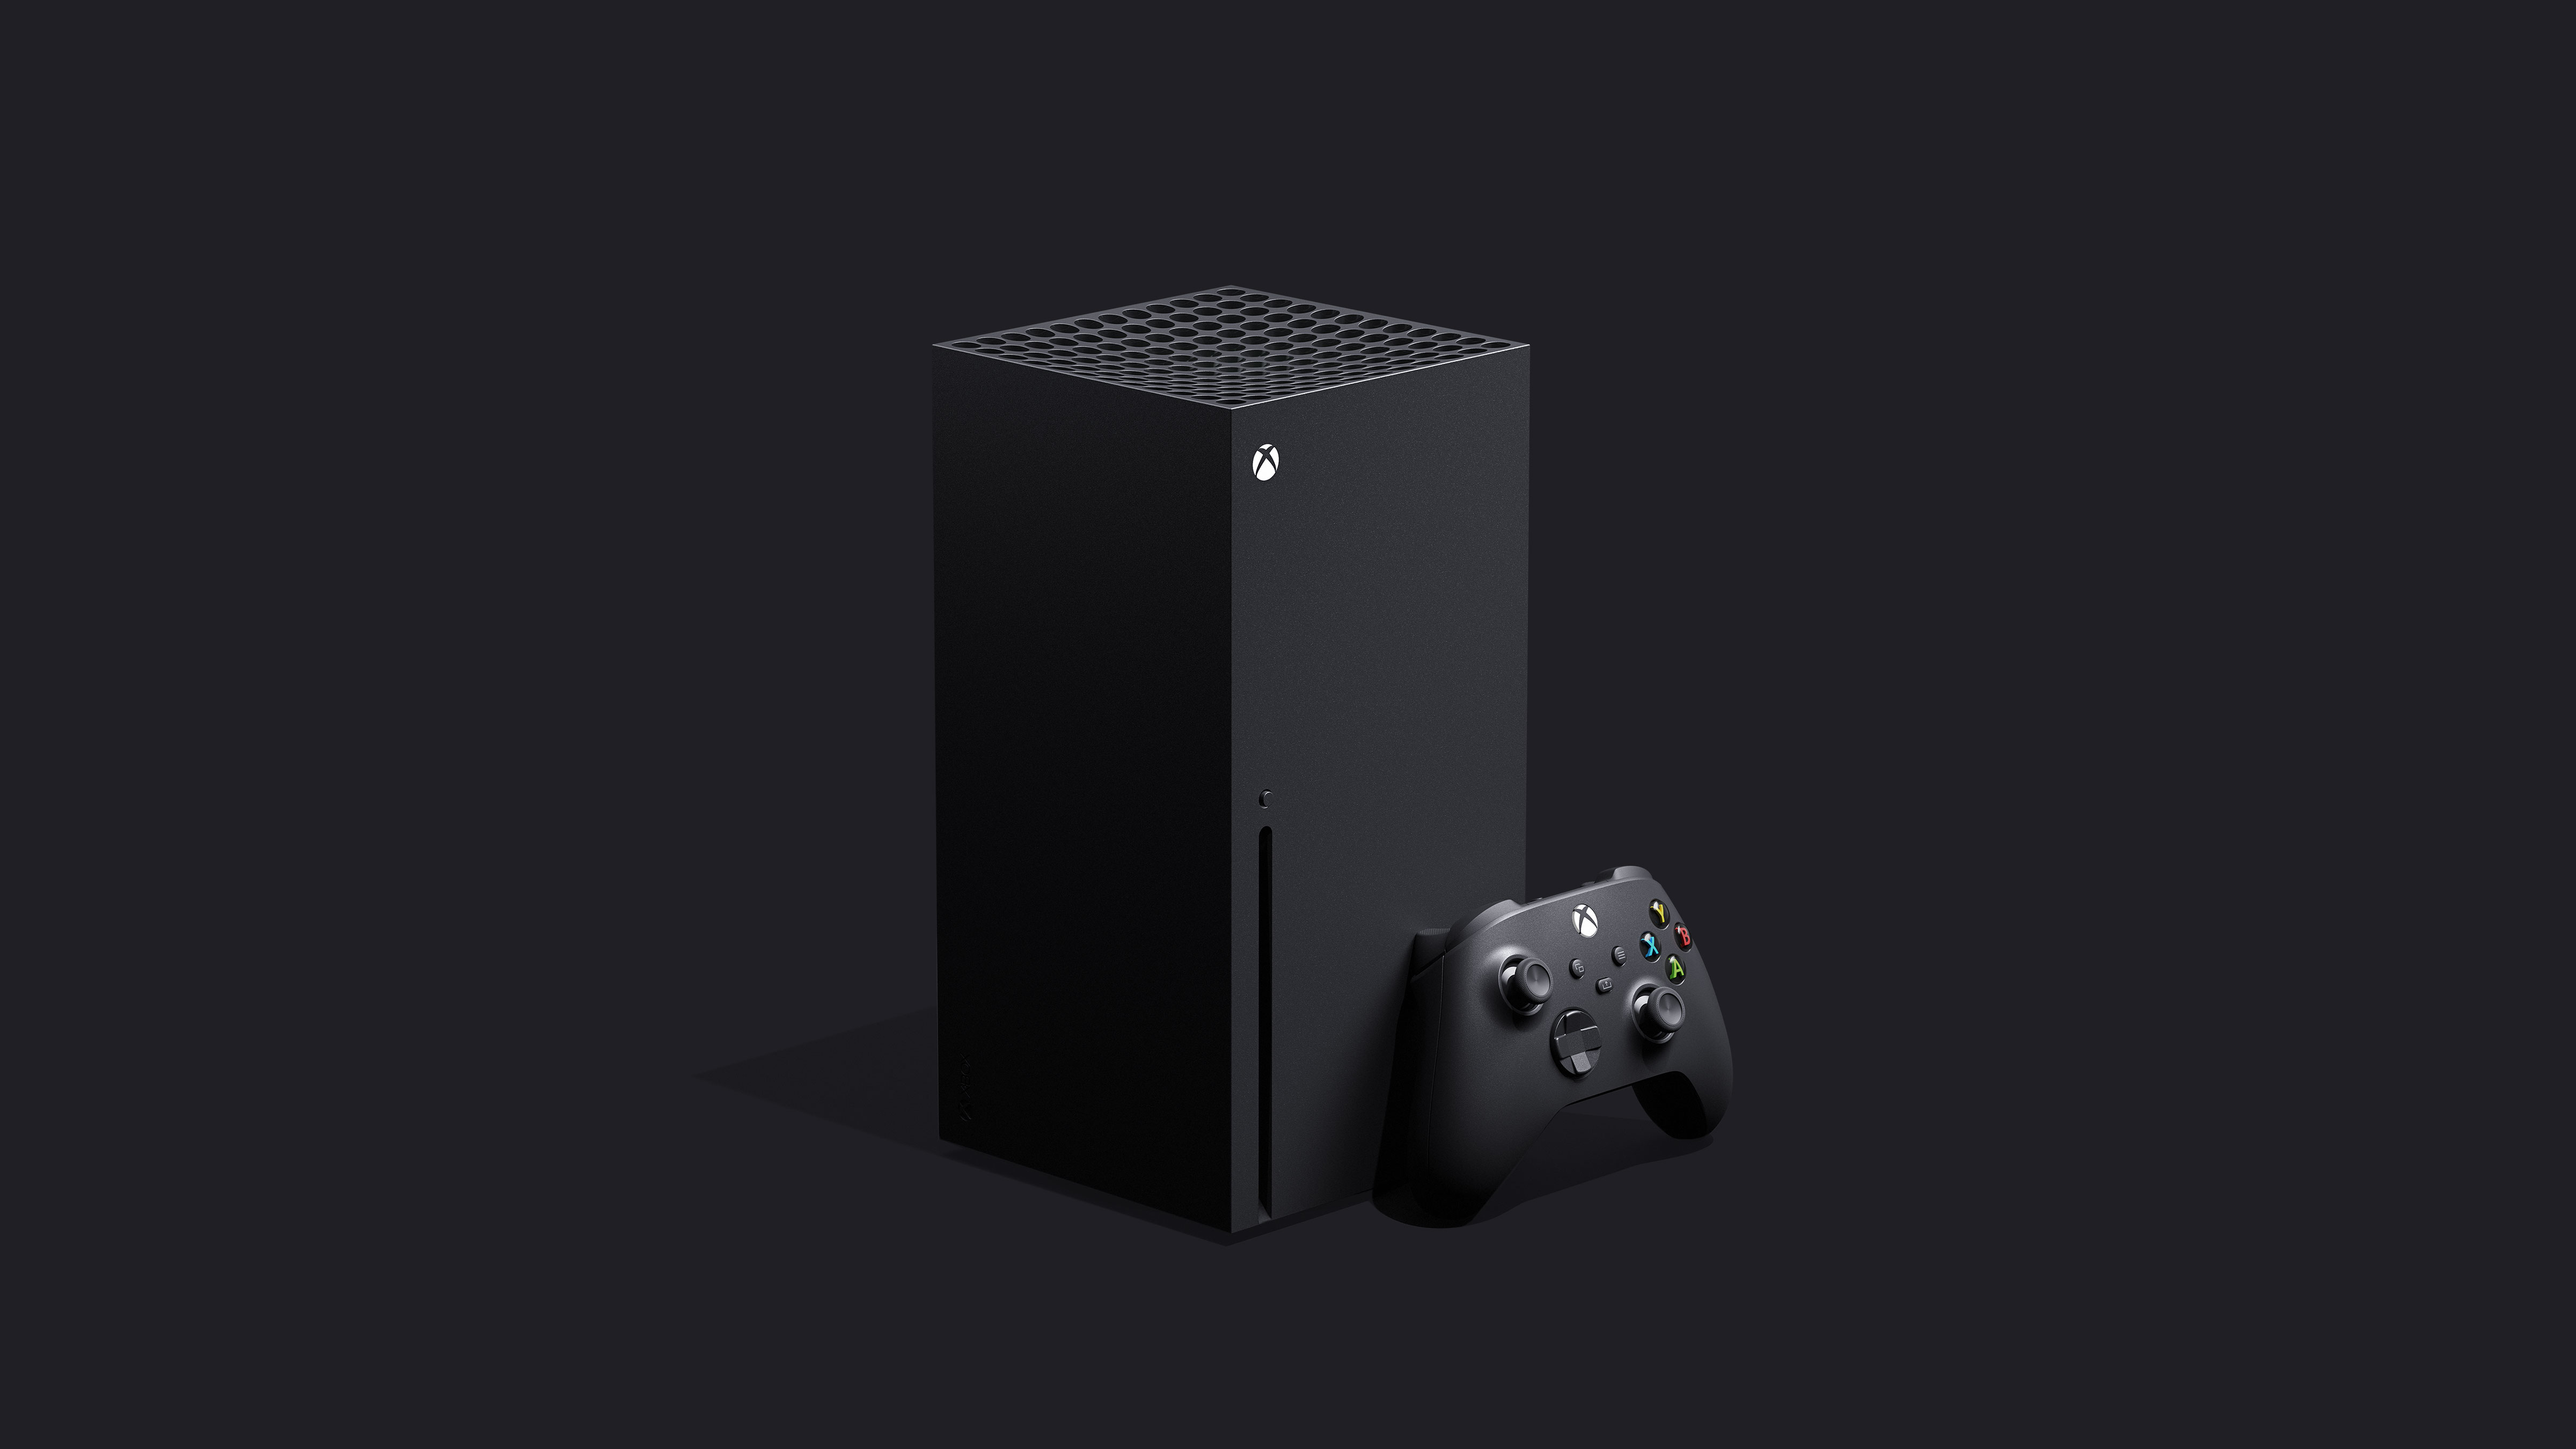 Microsoft unveils Xbox Series X, new video game console meets online mockery